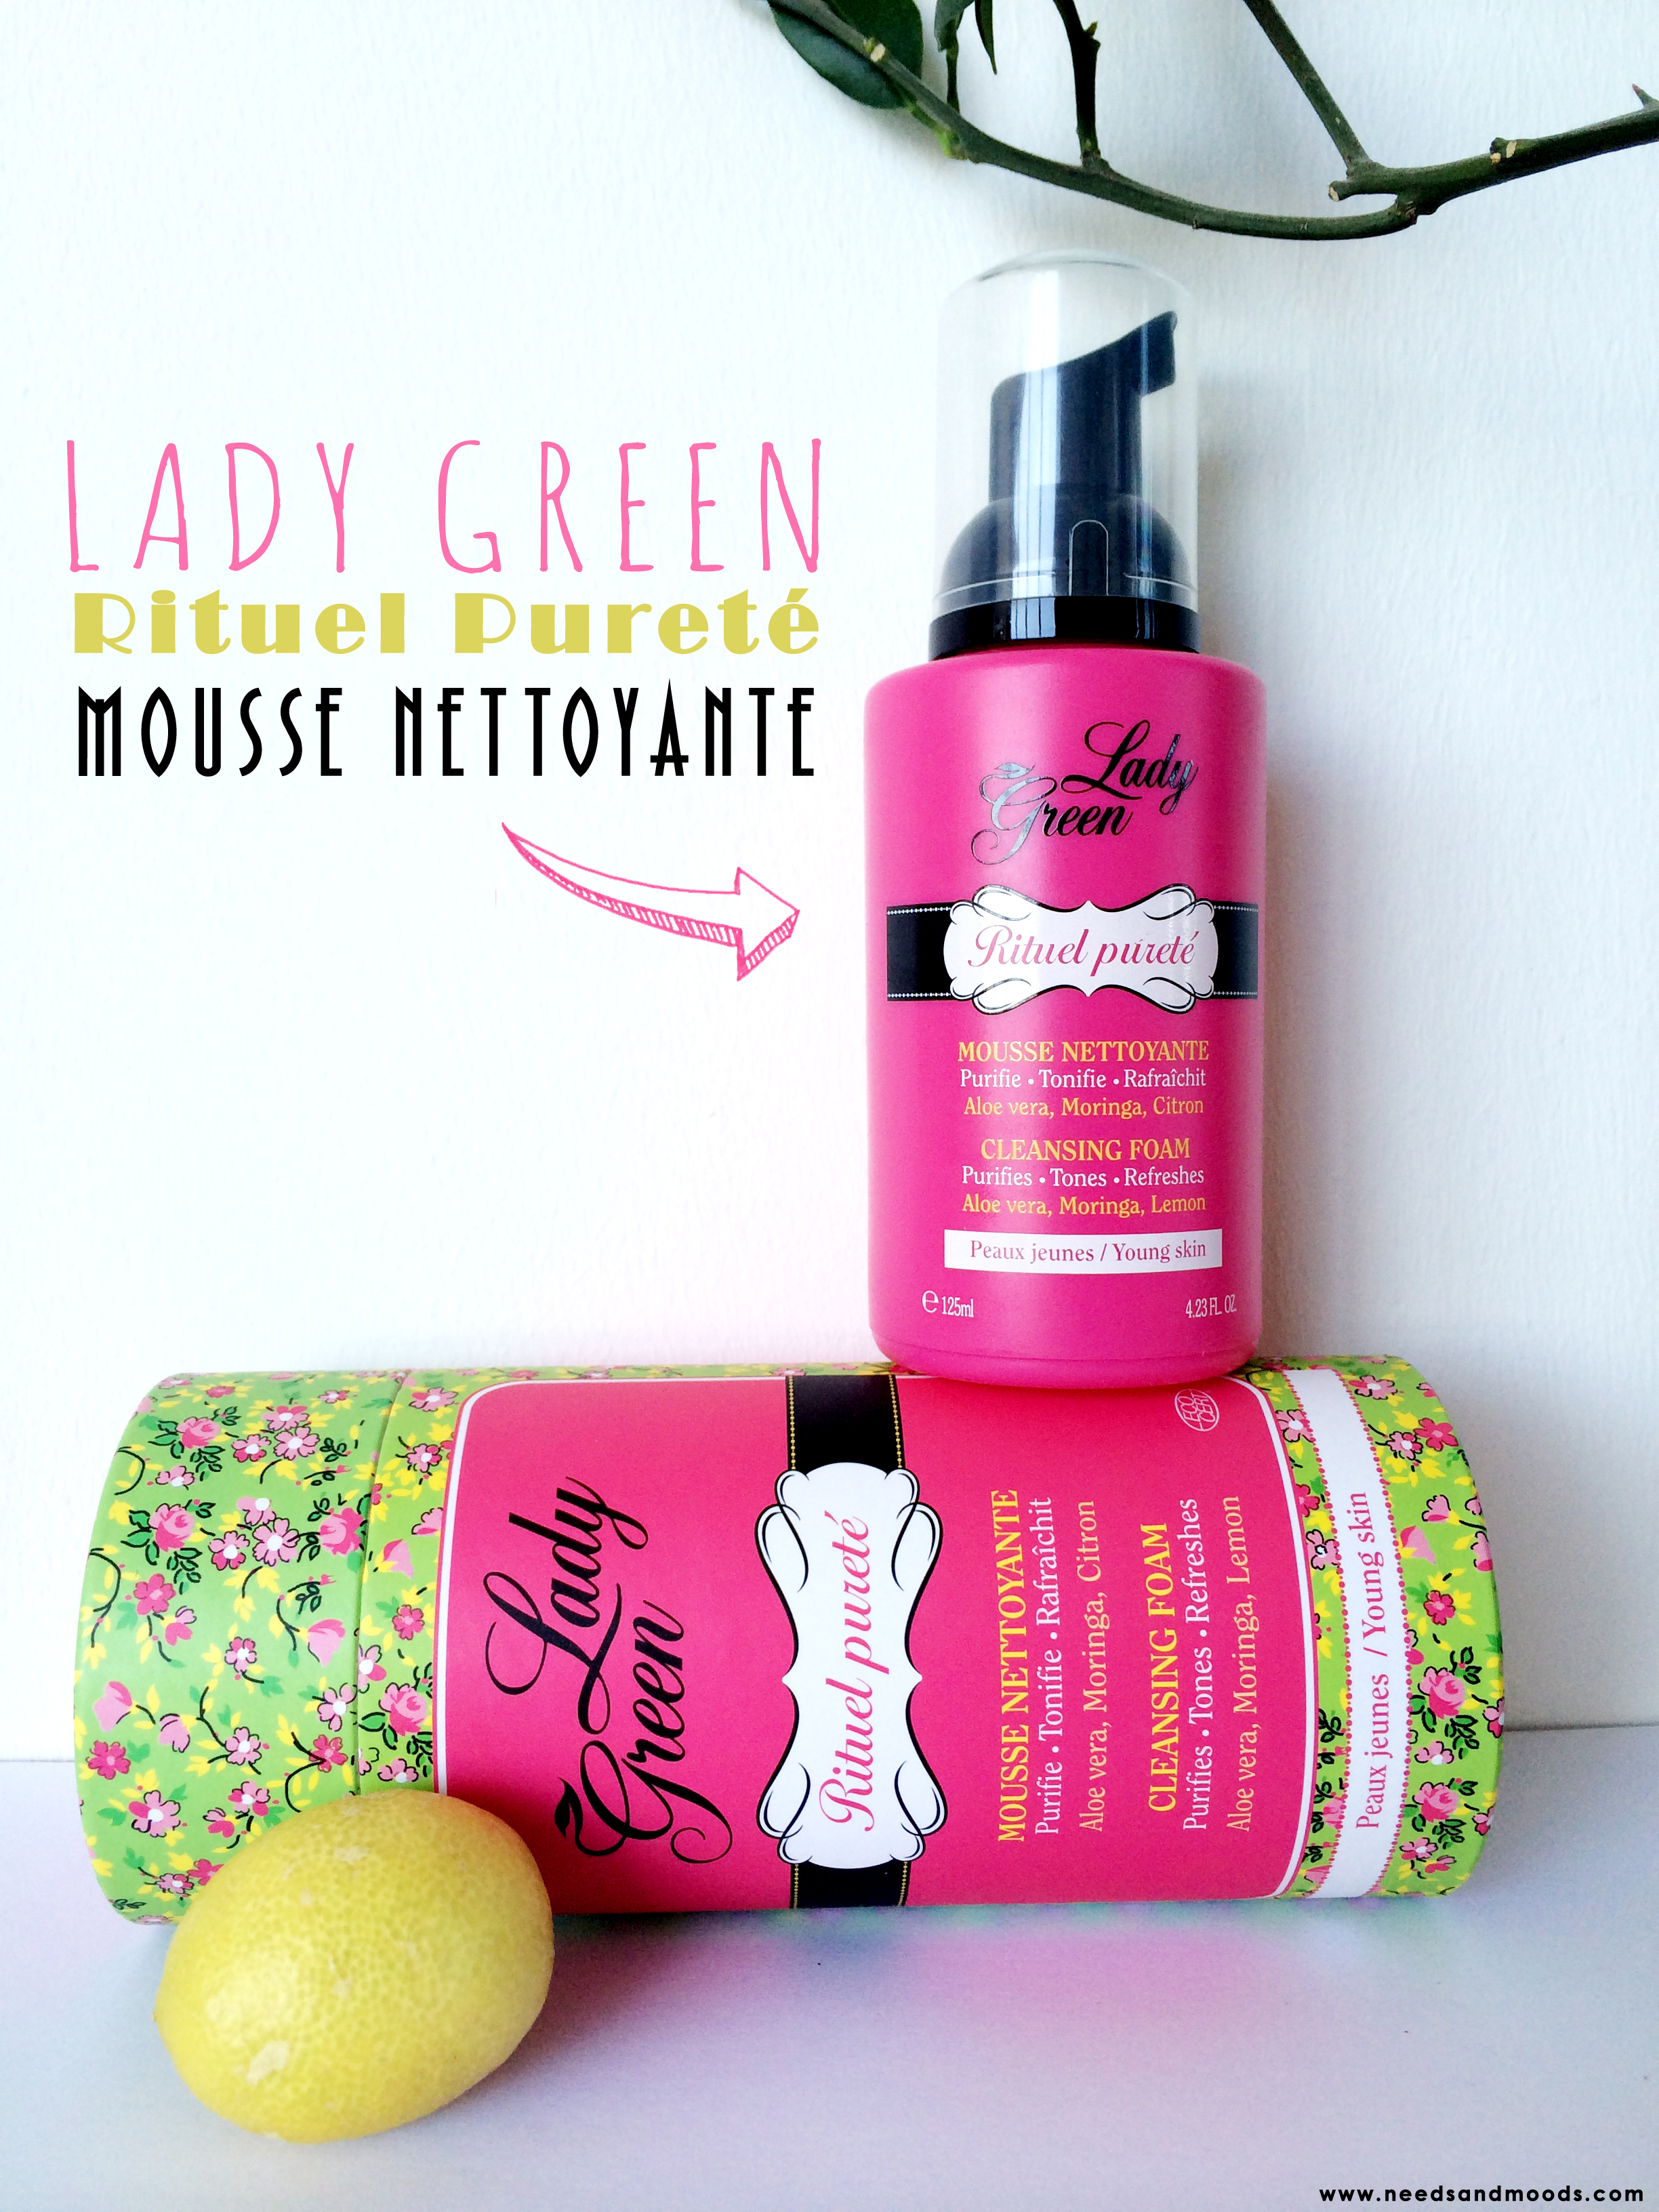 Lady Green - rituel pureté - review